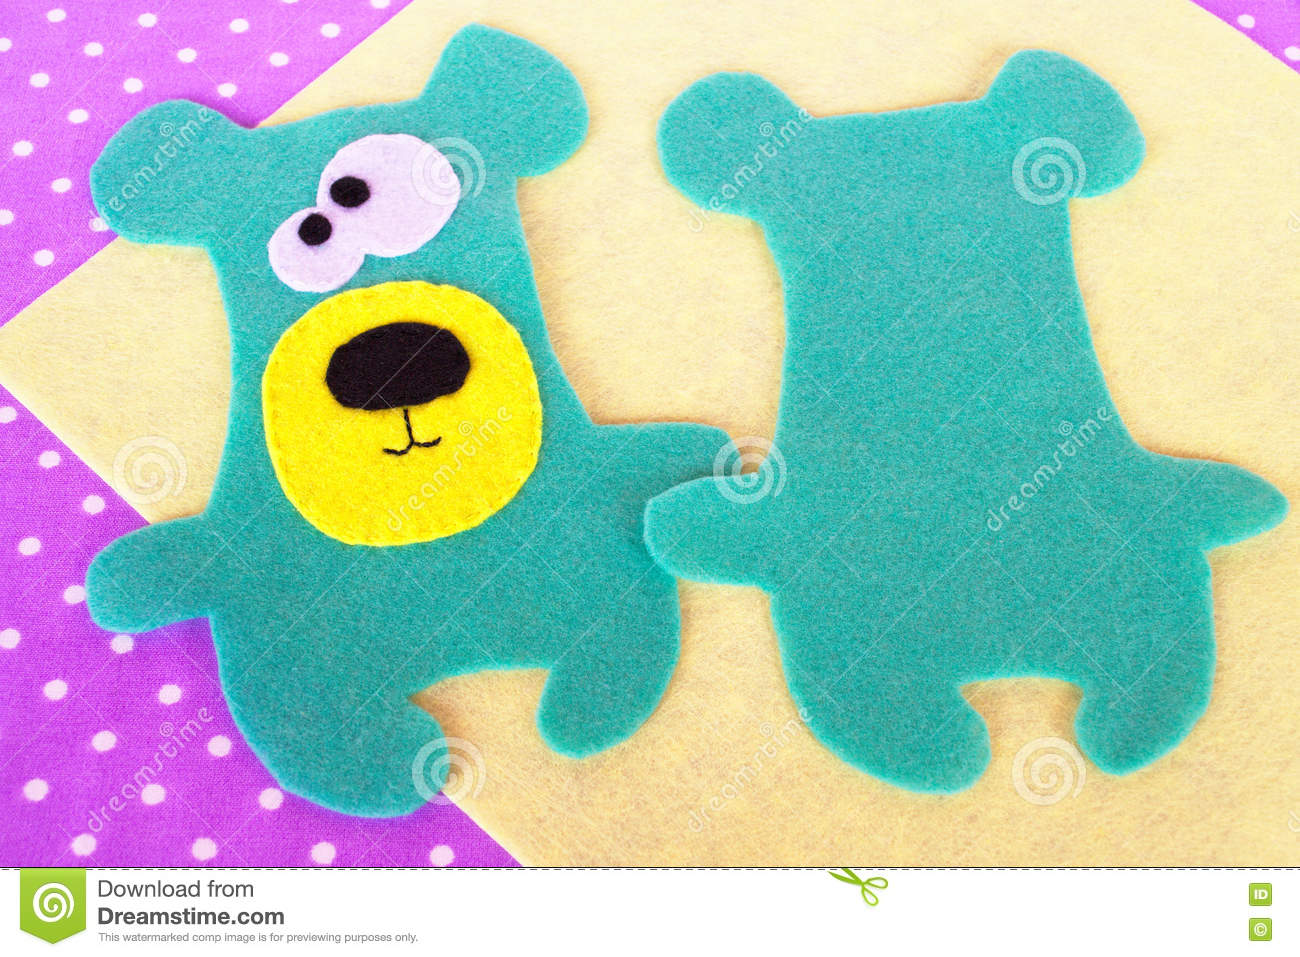 How to sew a teddy bear toy felt animal patterns sewing lesson how to sew a teddy bear toy felt animal patterns sewing lesson for children tutorial jeuxipadfo Image collections